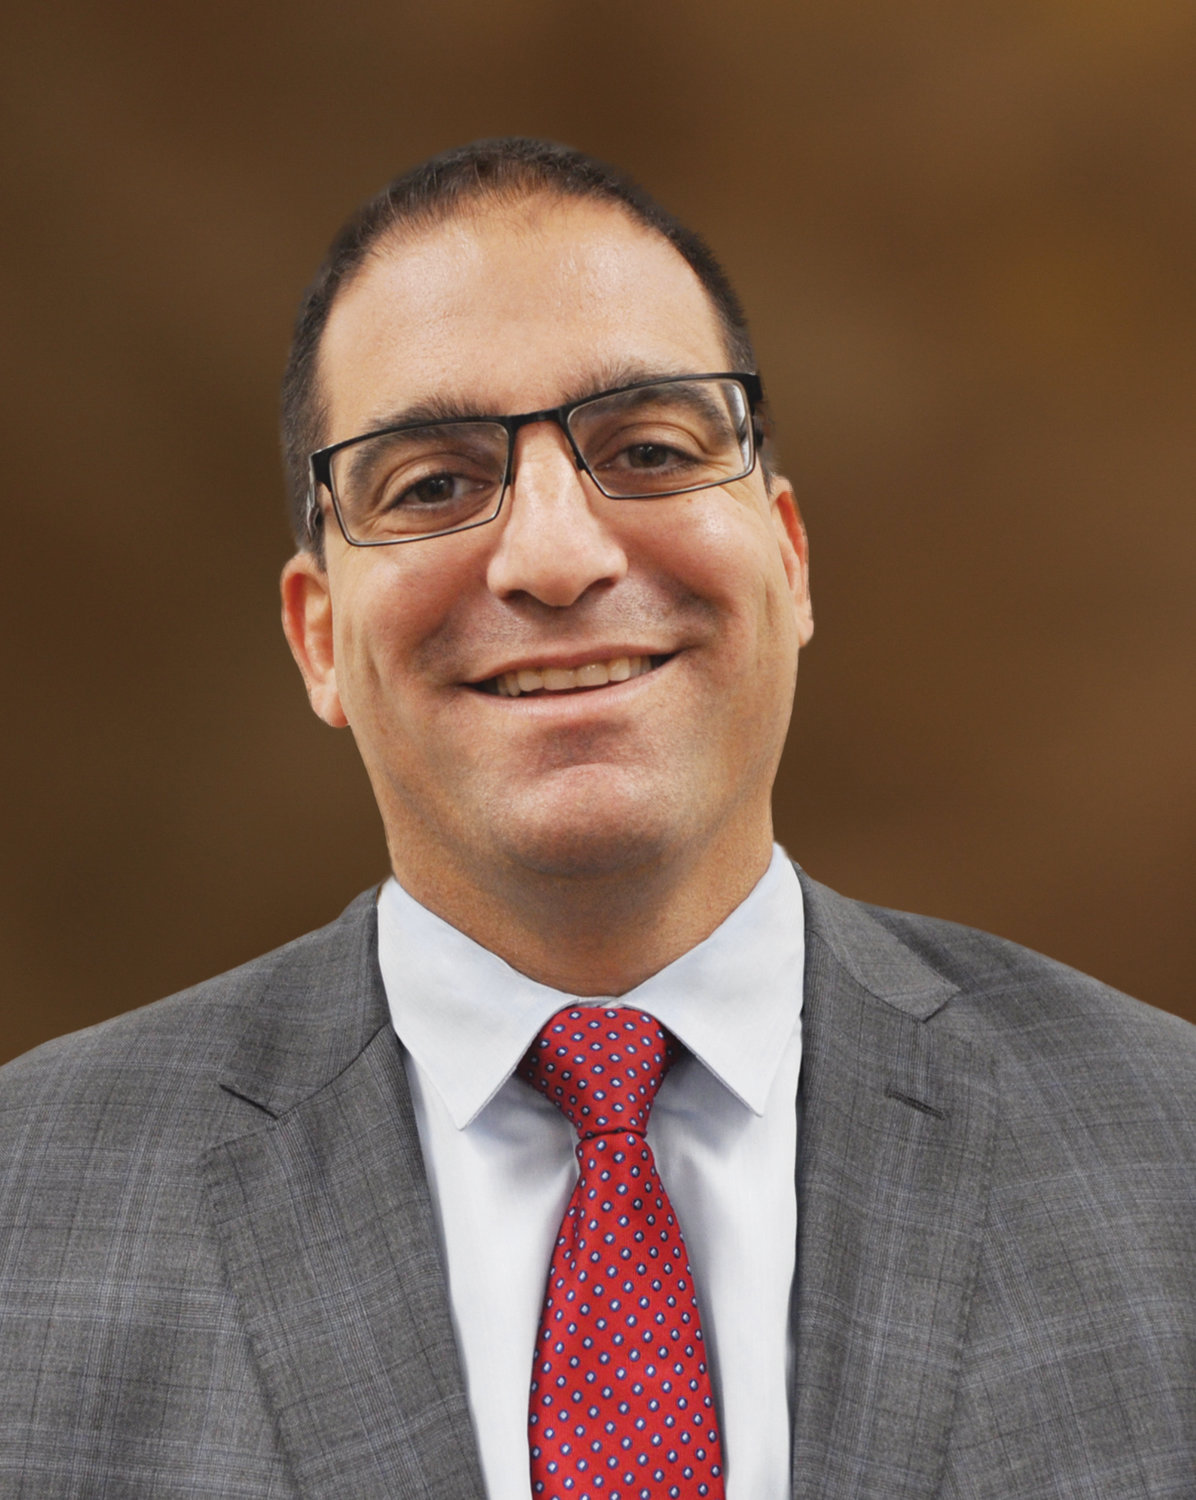 Mount Sinai South Nassau named John Pohlman its senior vice president and chief financial officer.